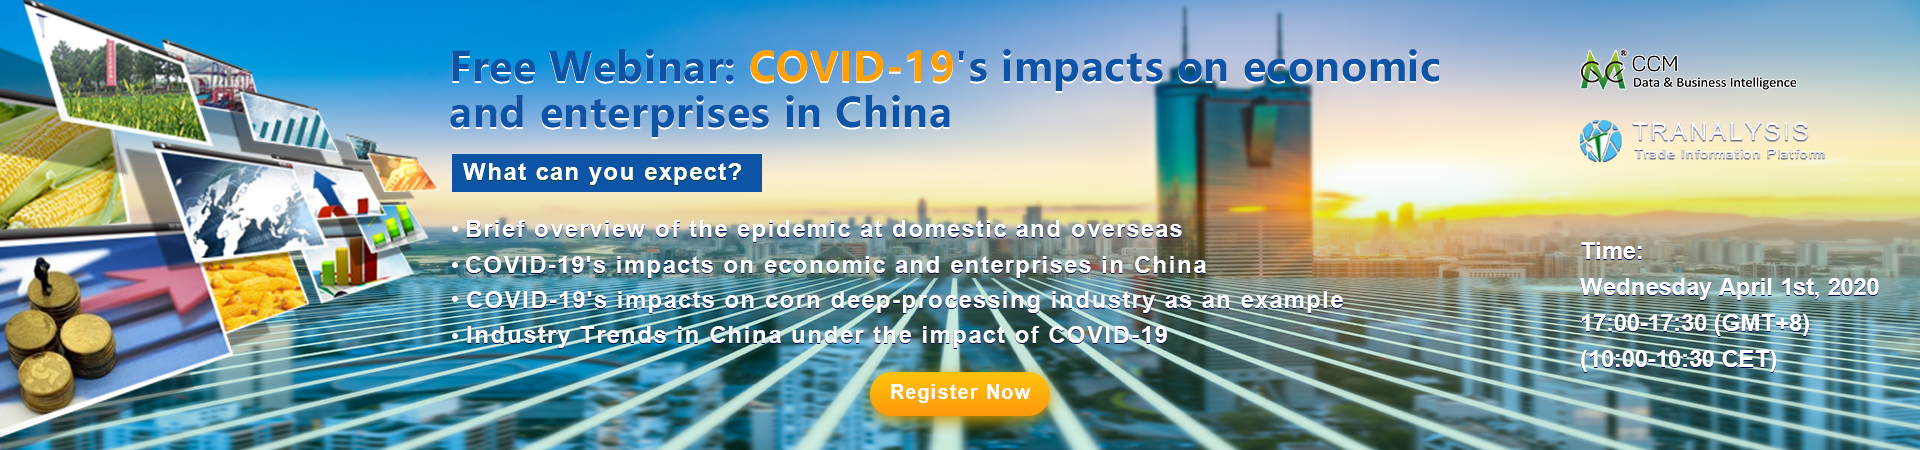 COVID-19's impacts on economic and enterprises in China